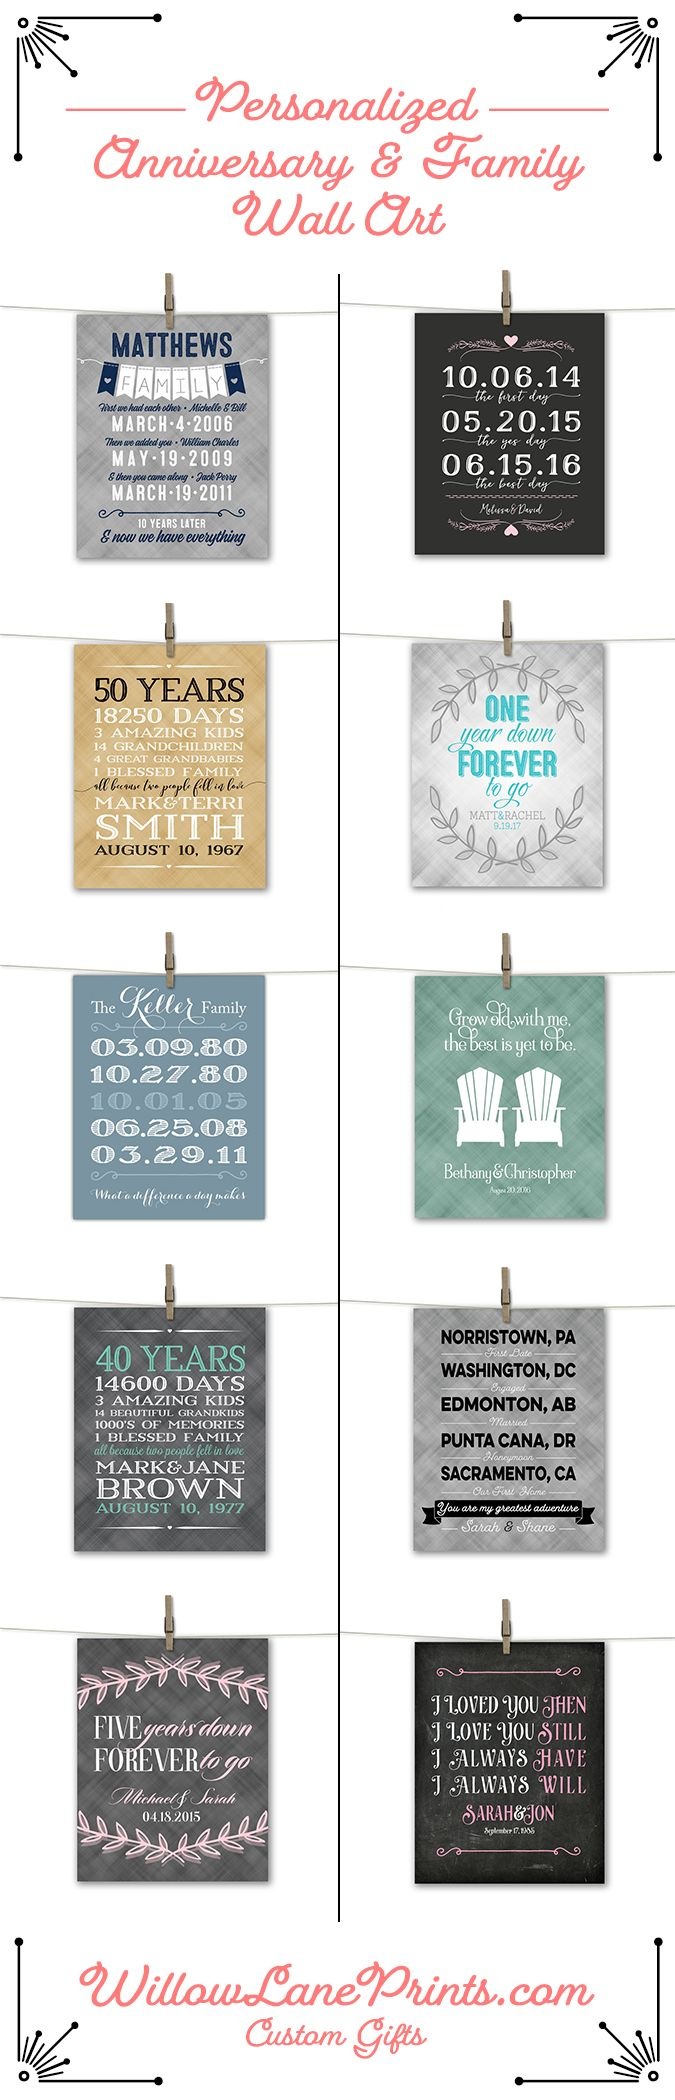 38 best Custom Anniversary gift ideas for him or her images on ...